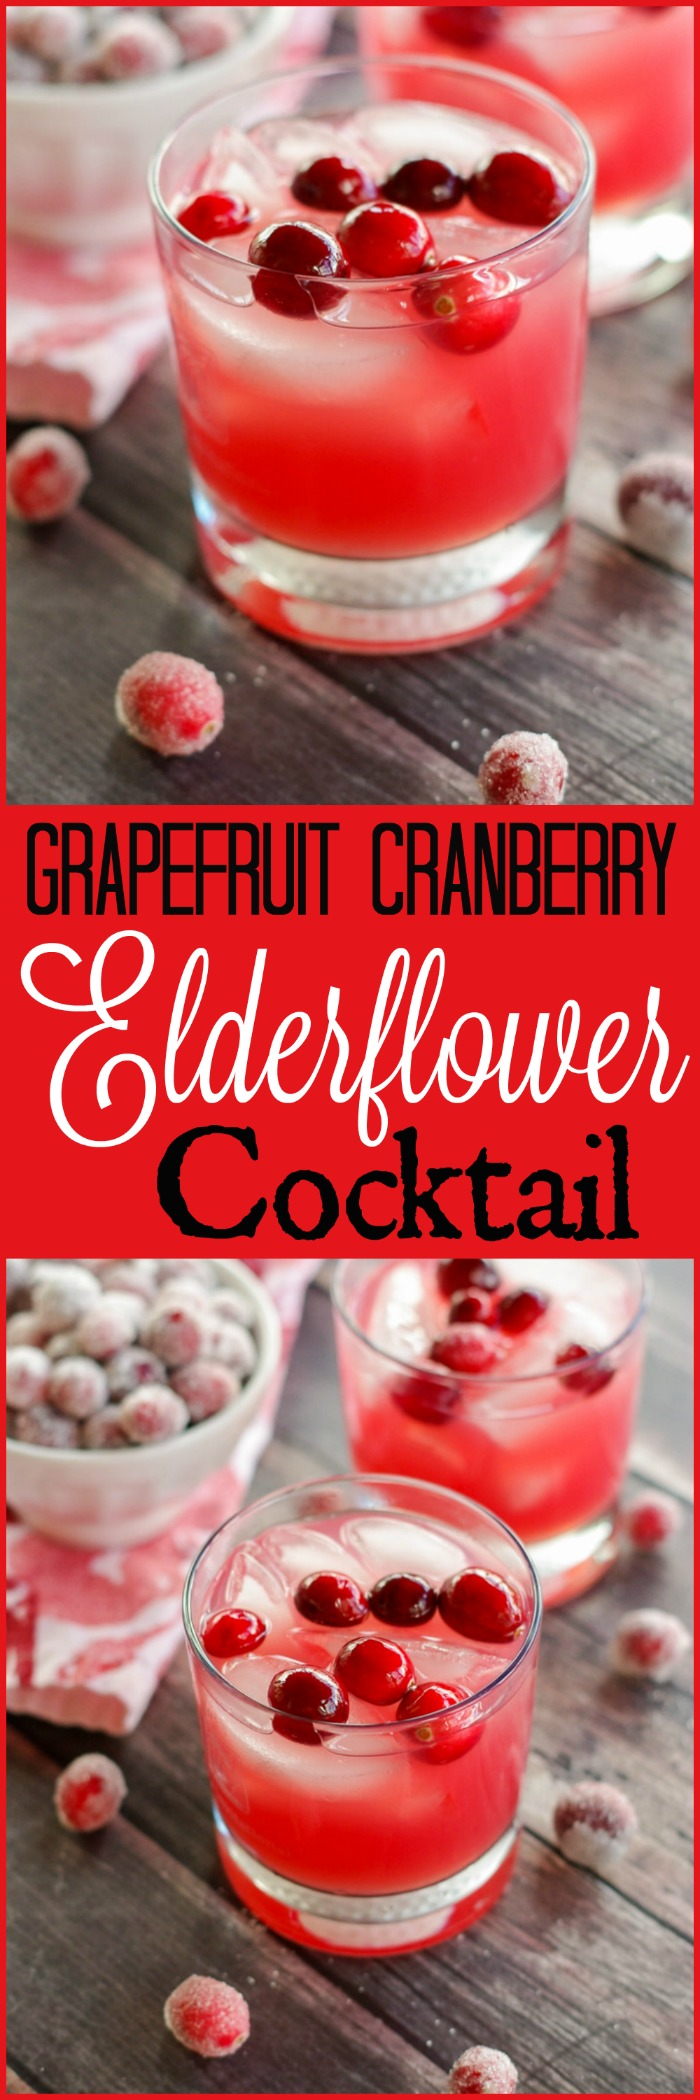 Grapefruit Cranberry Elderflower Cocktail| www.homeandplate.com | The tart flavors of grapefruit and cranberries are swirled together with sweet elderflower liqueur and vodka in this perfect winter cocktail.